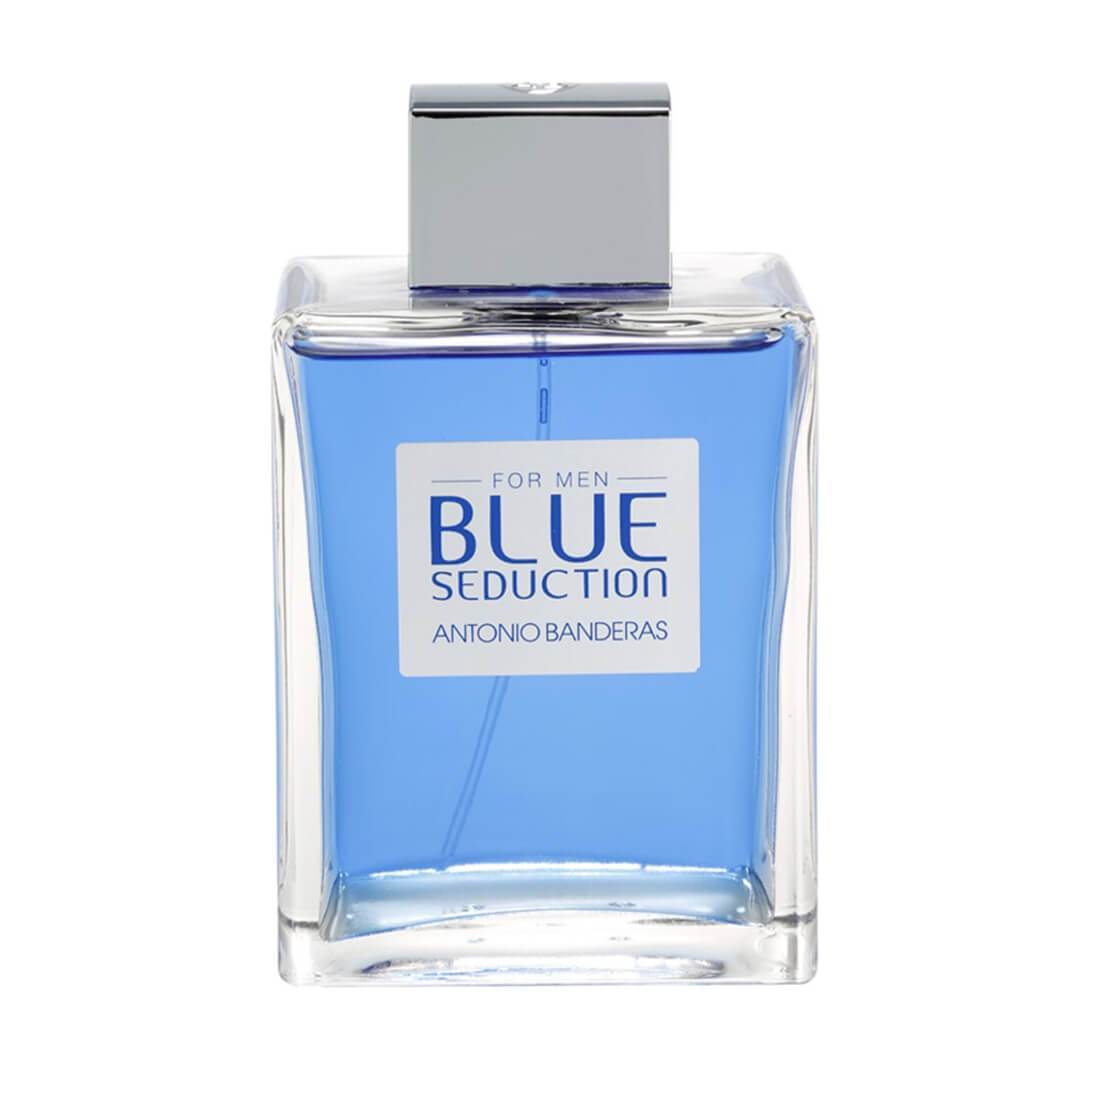 Antonio Banderas Blue Seduction For Men Perfume EDT